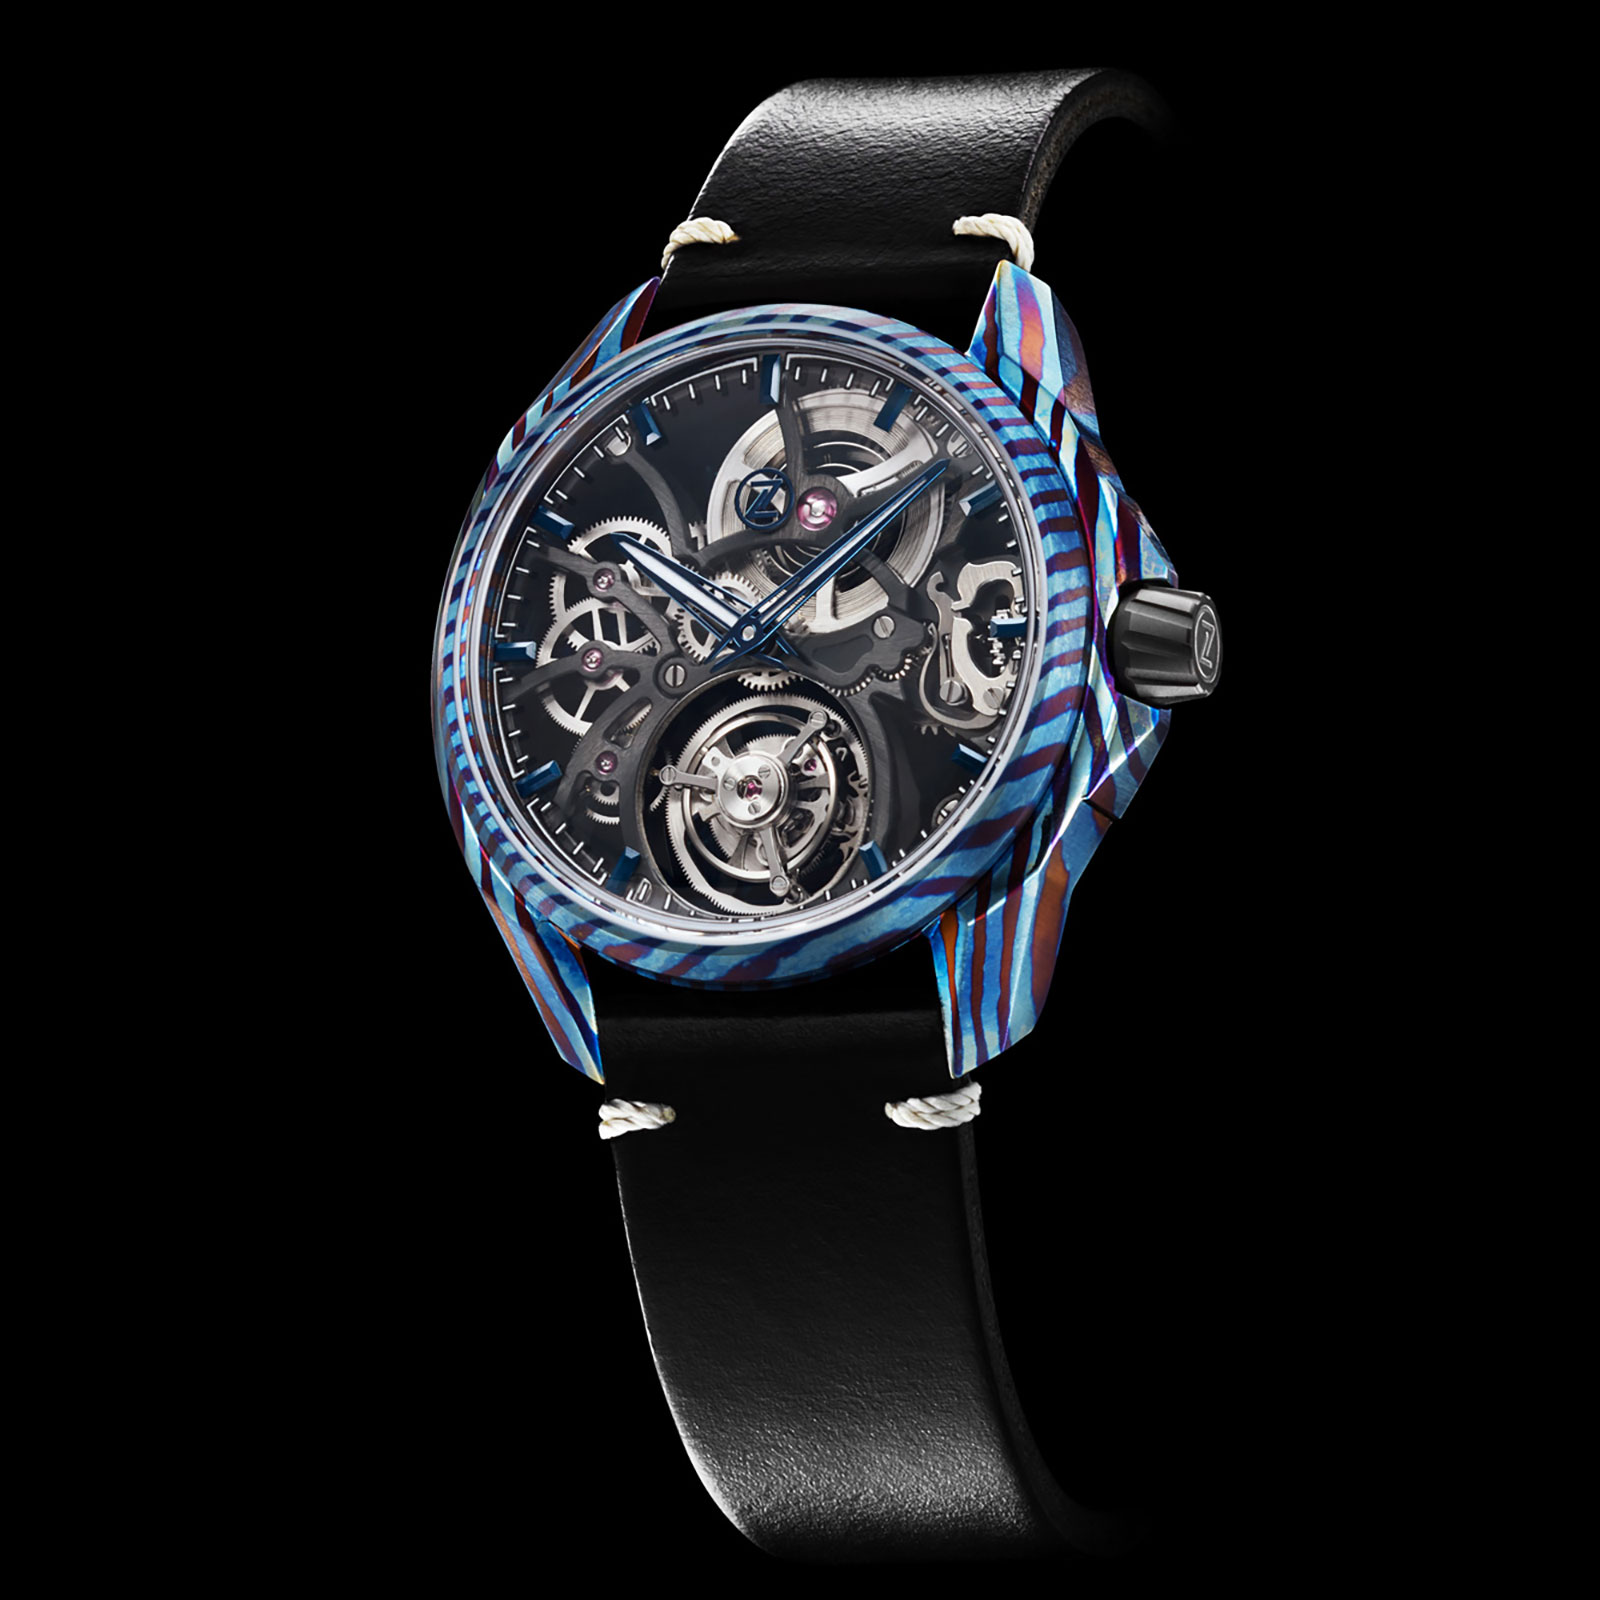 Zelos Introduces the Mirage Tourbillon in Pattern-Welded Alloys | SJX  Watches